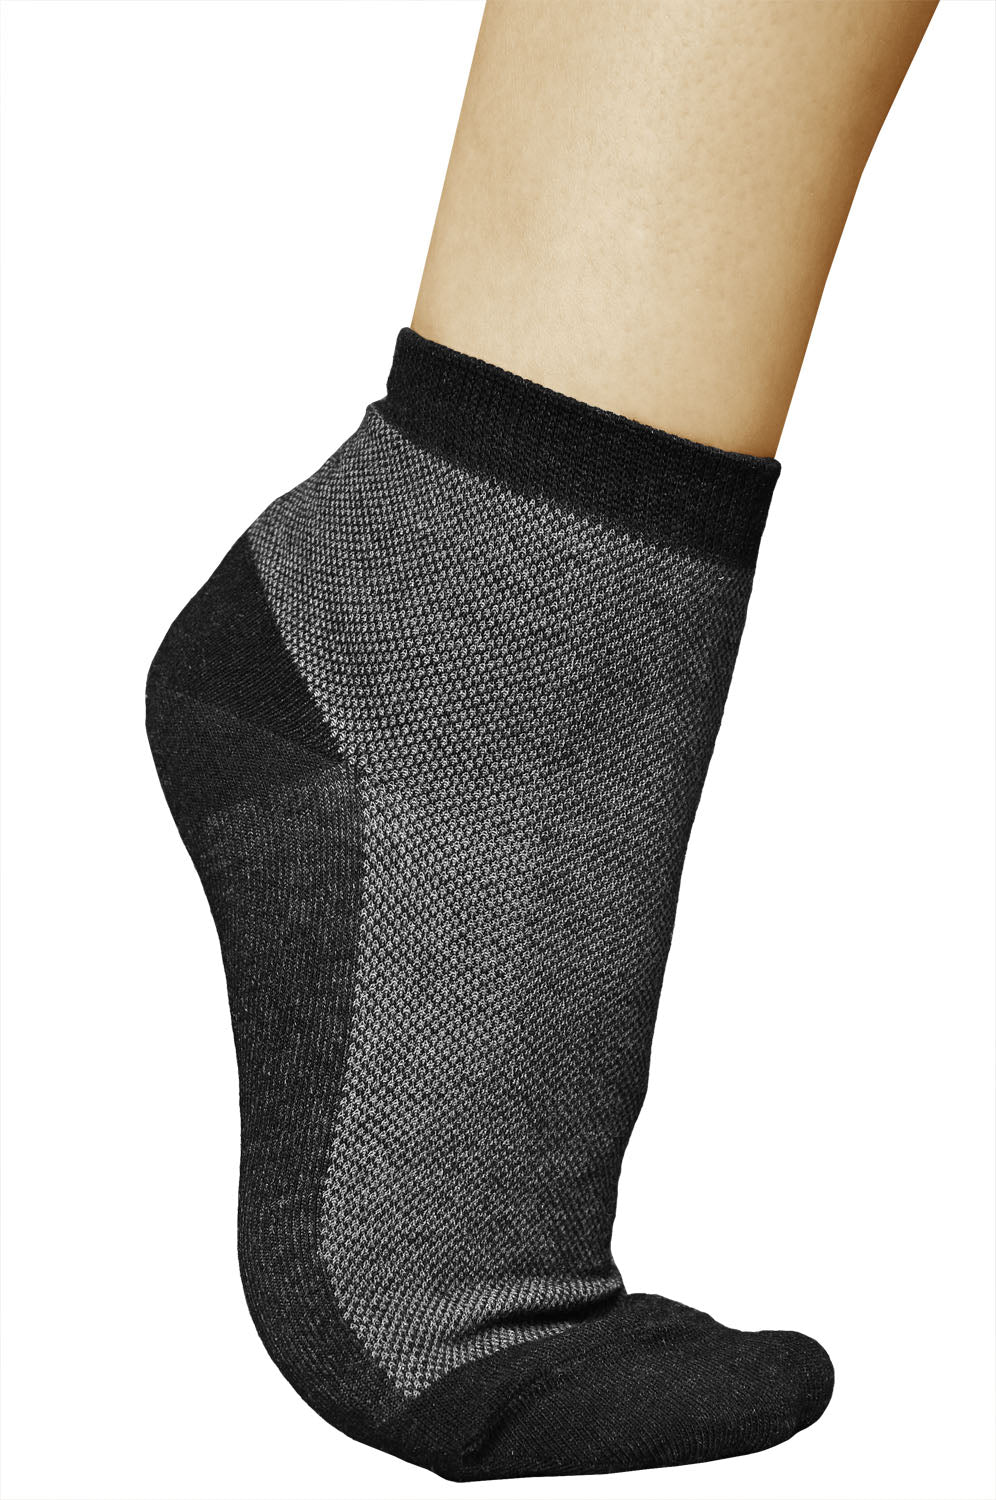 Sweat Guard 5% Silver New Ankle Socks - 2 Pairs - Sweat Guard Footcare